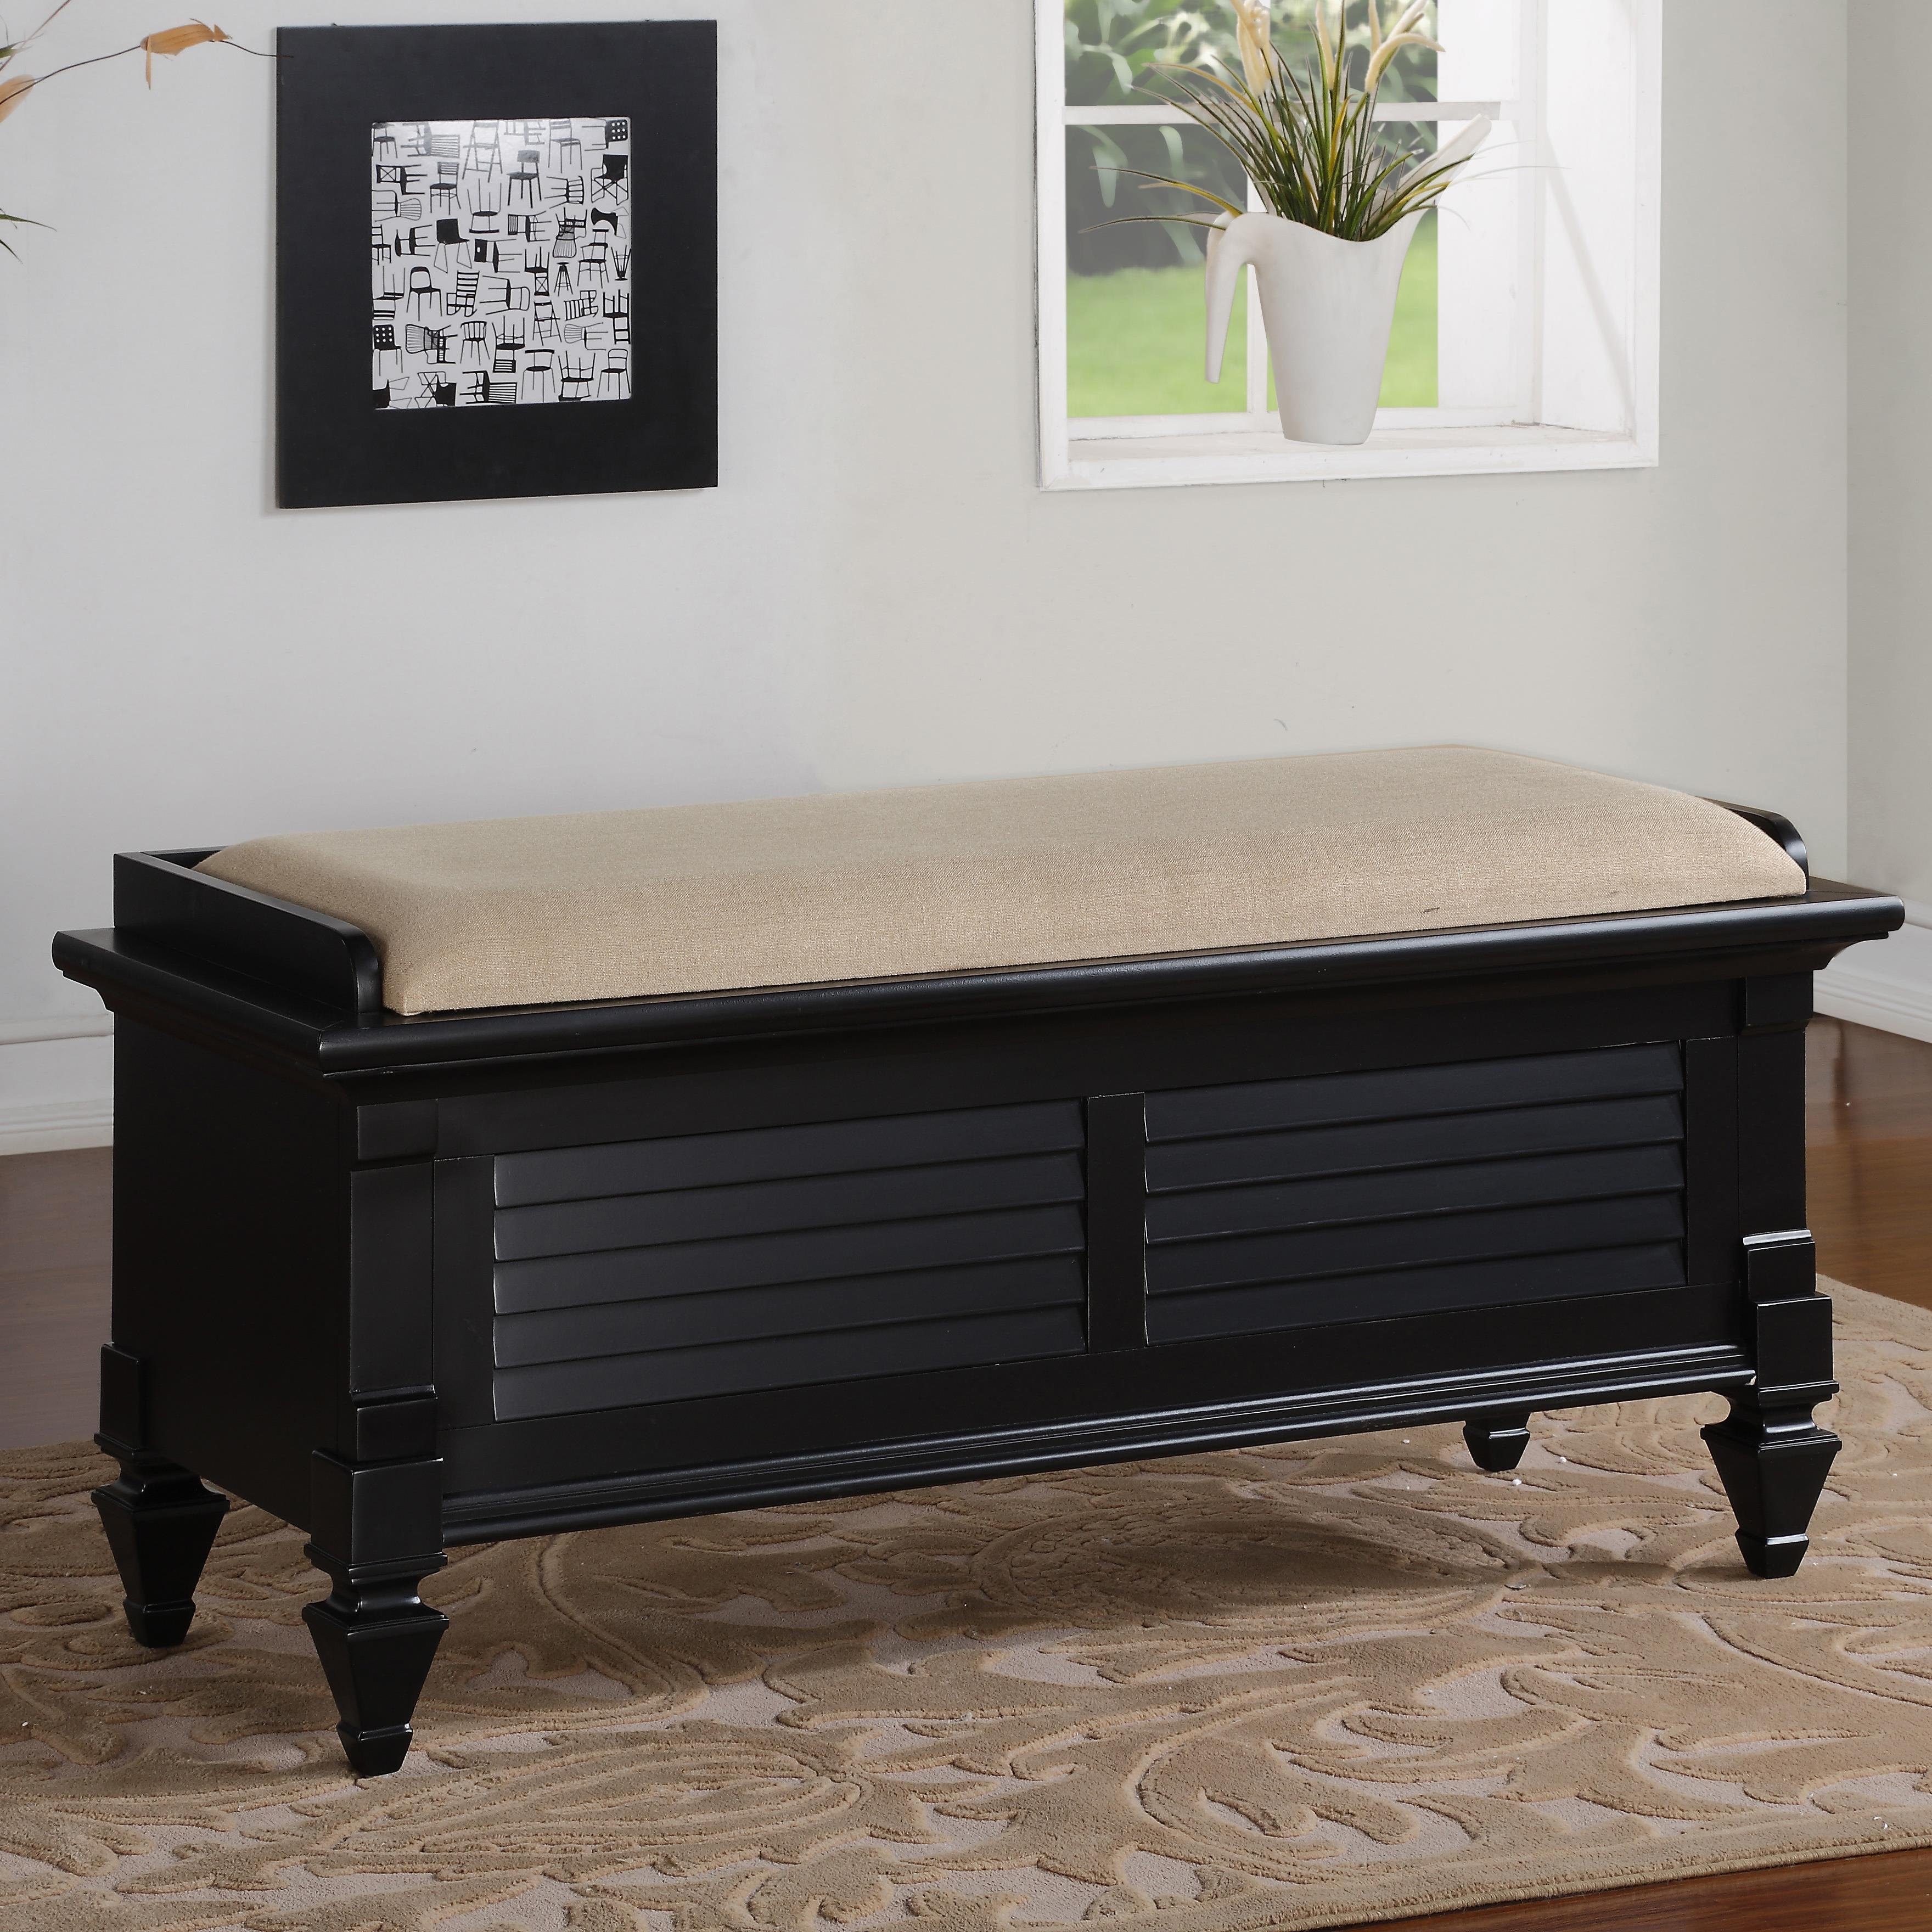 Holland House 2698 Storage Bench - Item Number: 2698-10